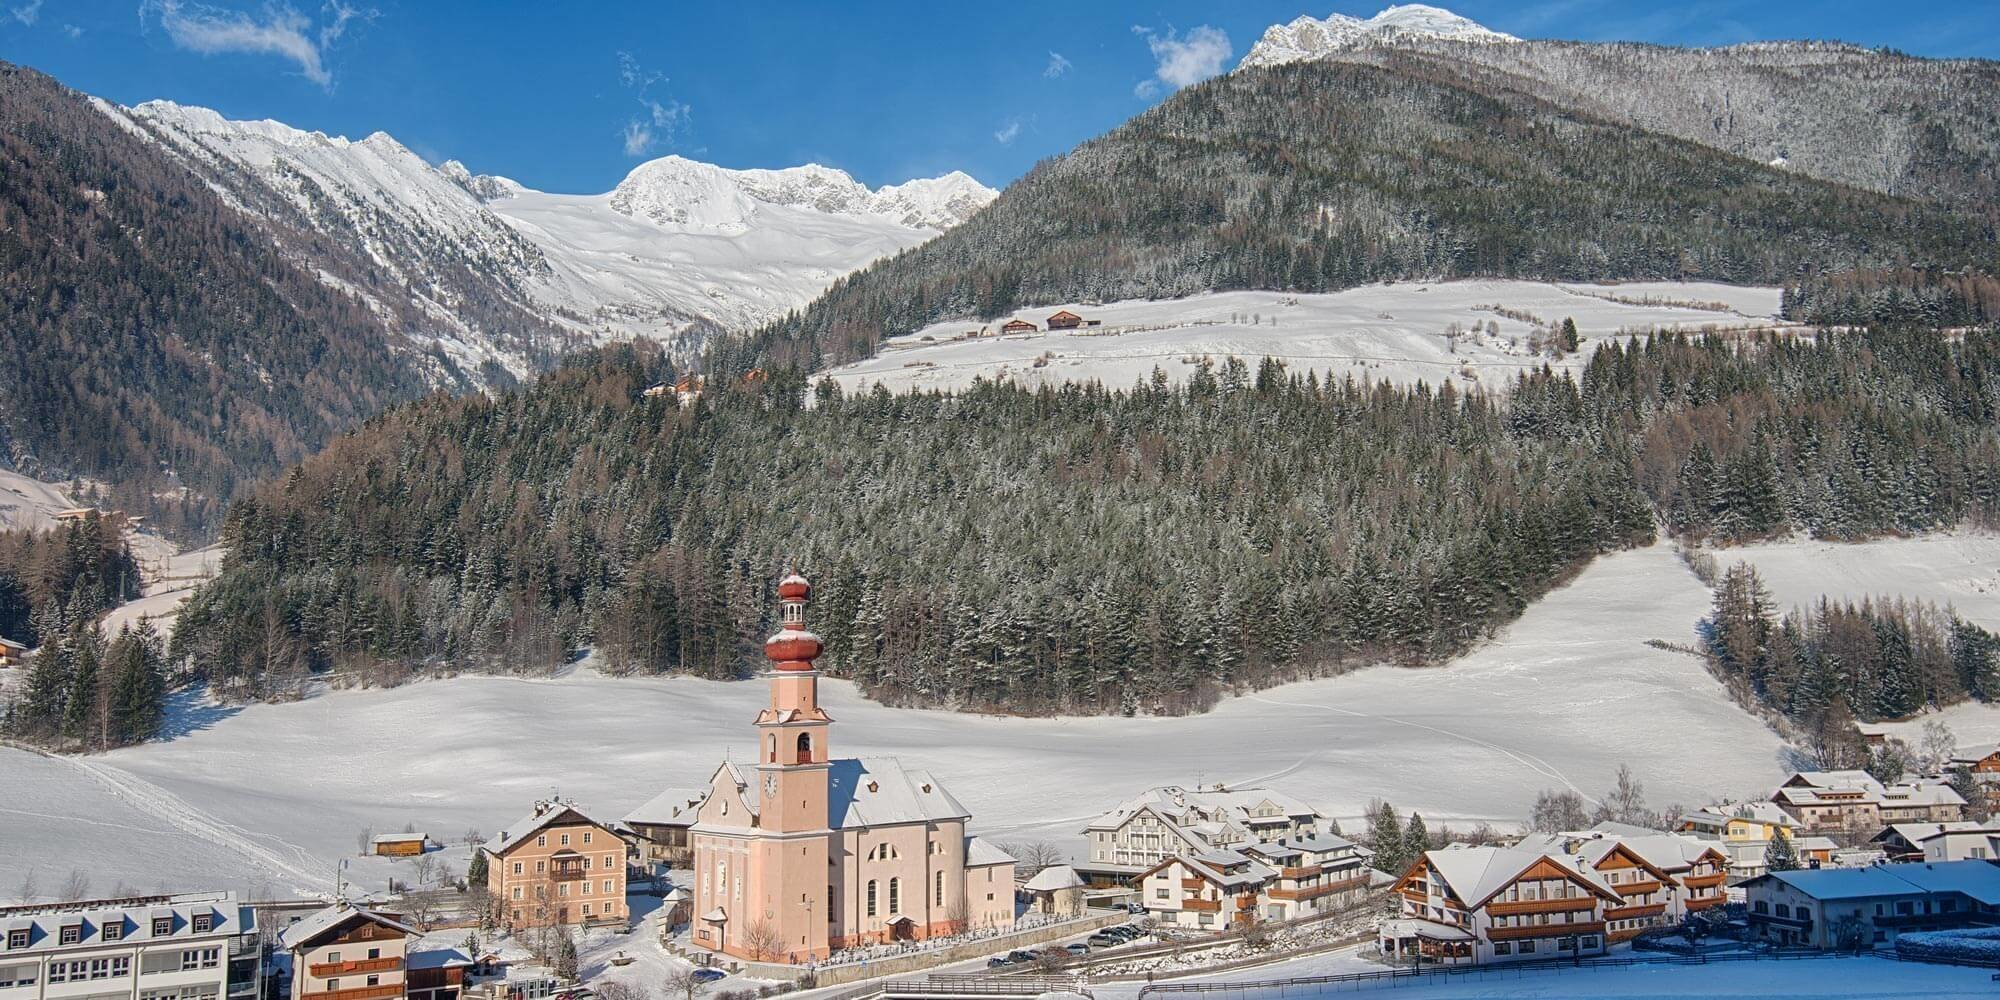 Your winter holidays in the Alps: Skiing in Ahrn valley